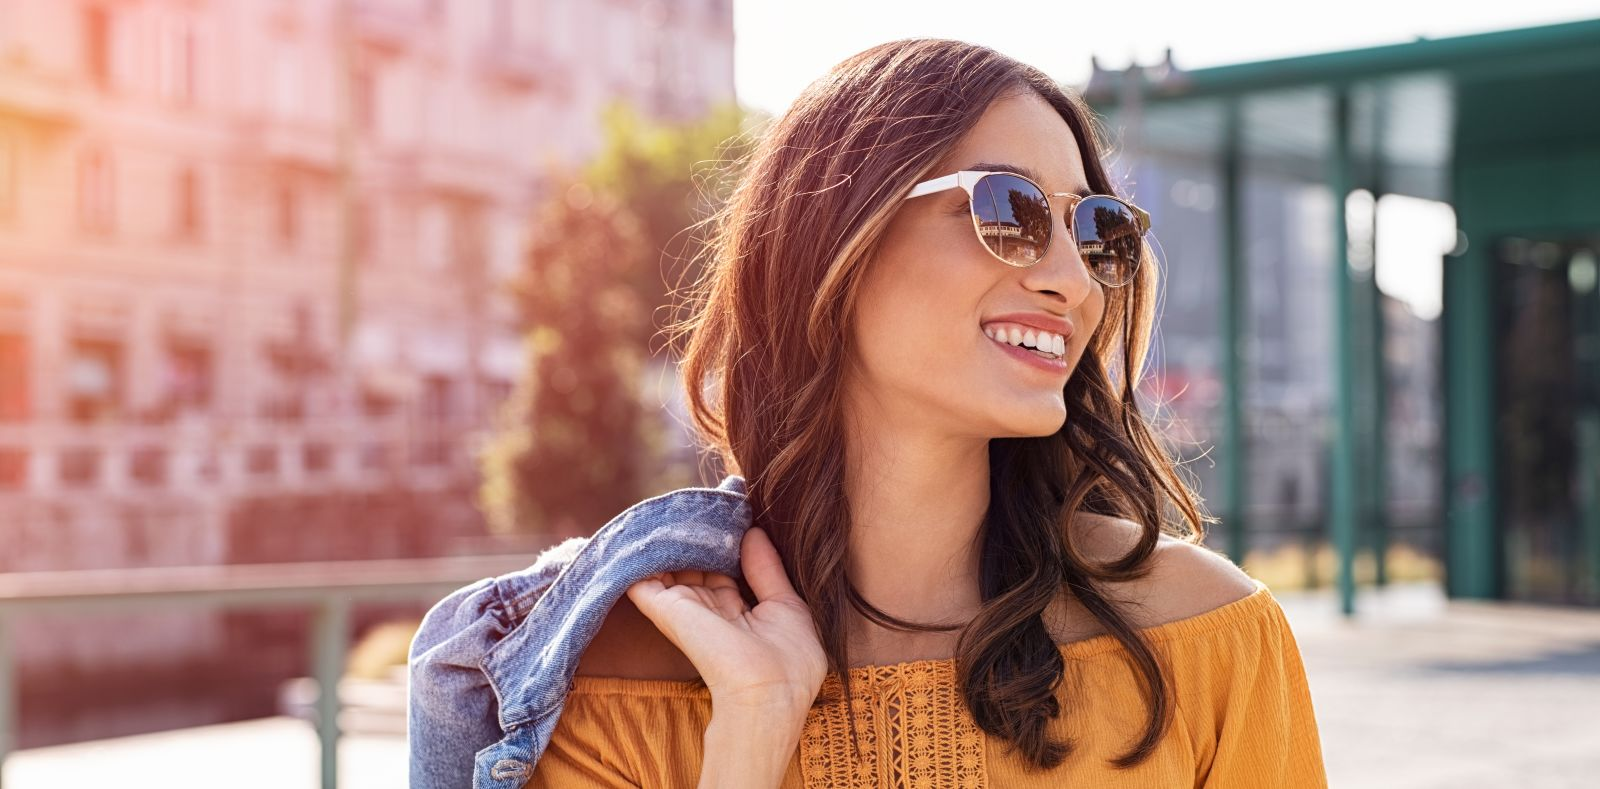 Whittier optometry and eyecare services